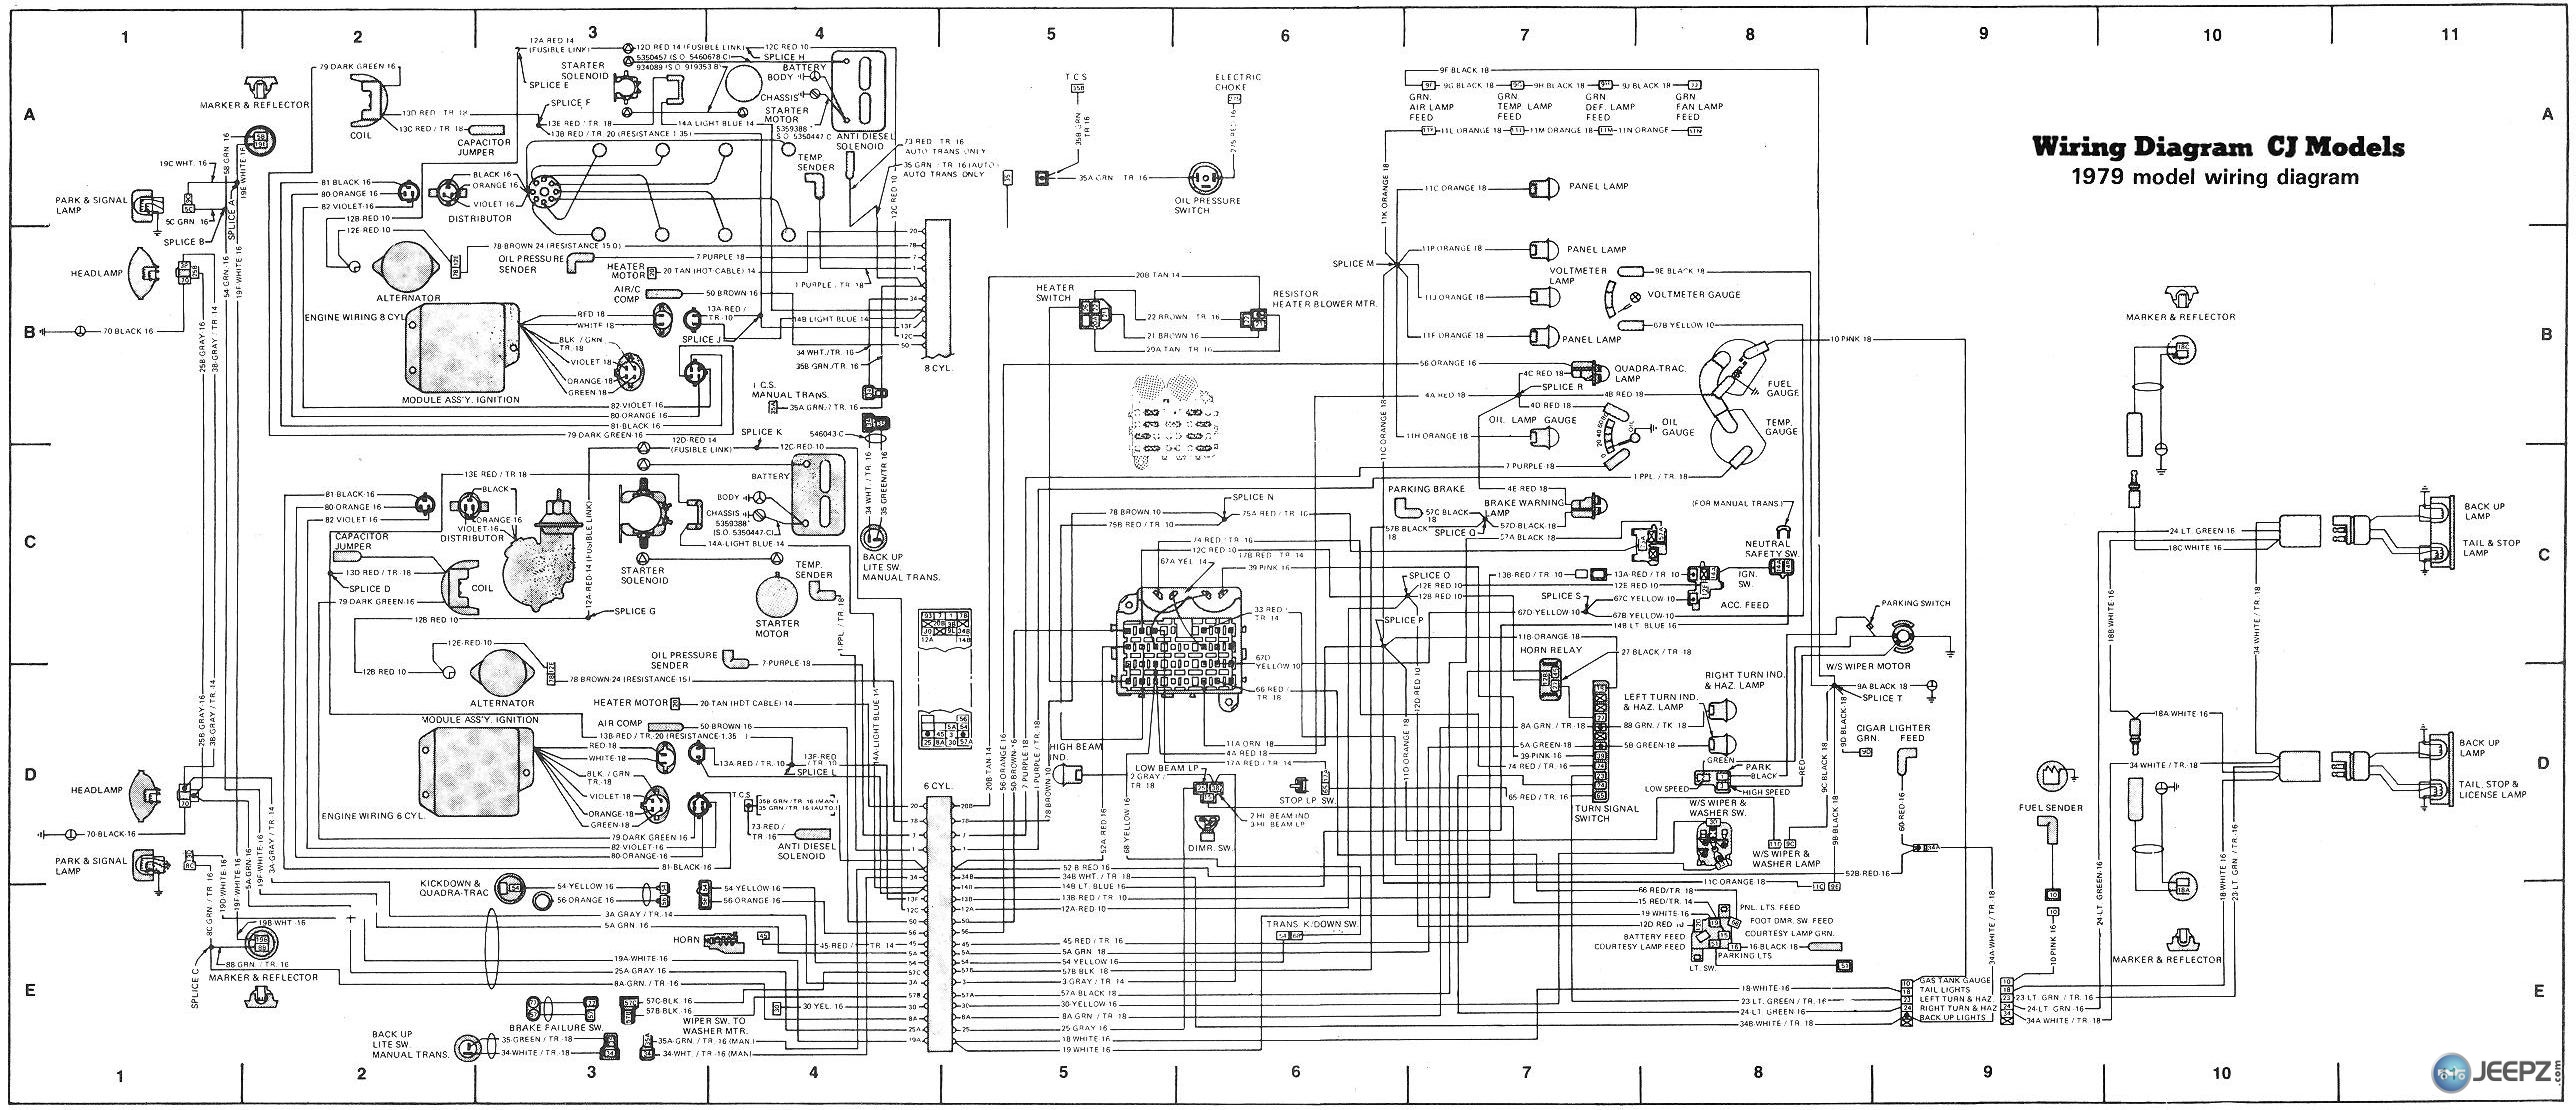 Phenomenal Wiring Diagram For Cj8 Blog Diagram Schema Wiring 101 Capemaxxcnl